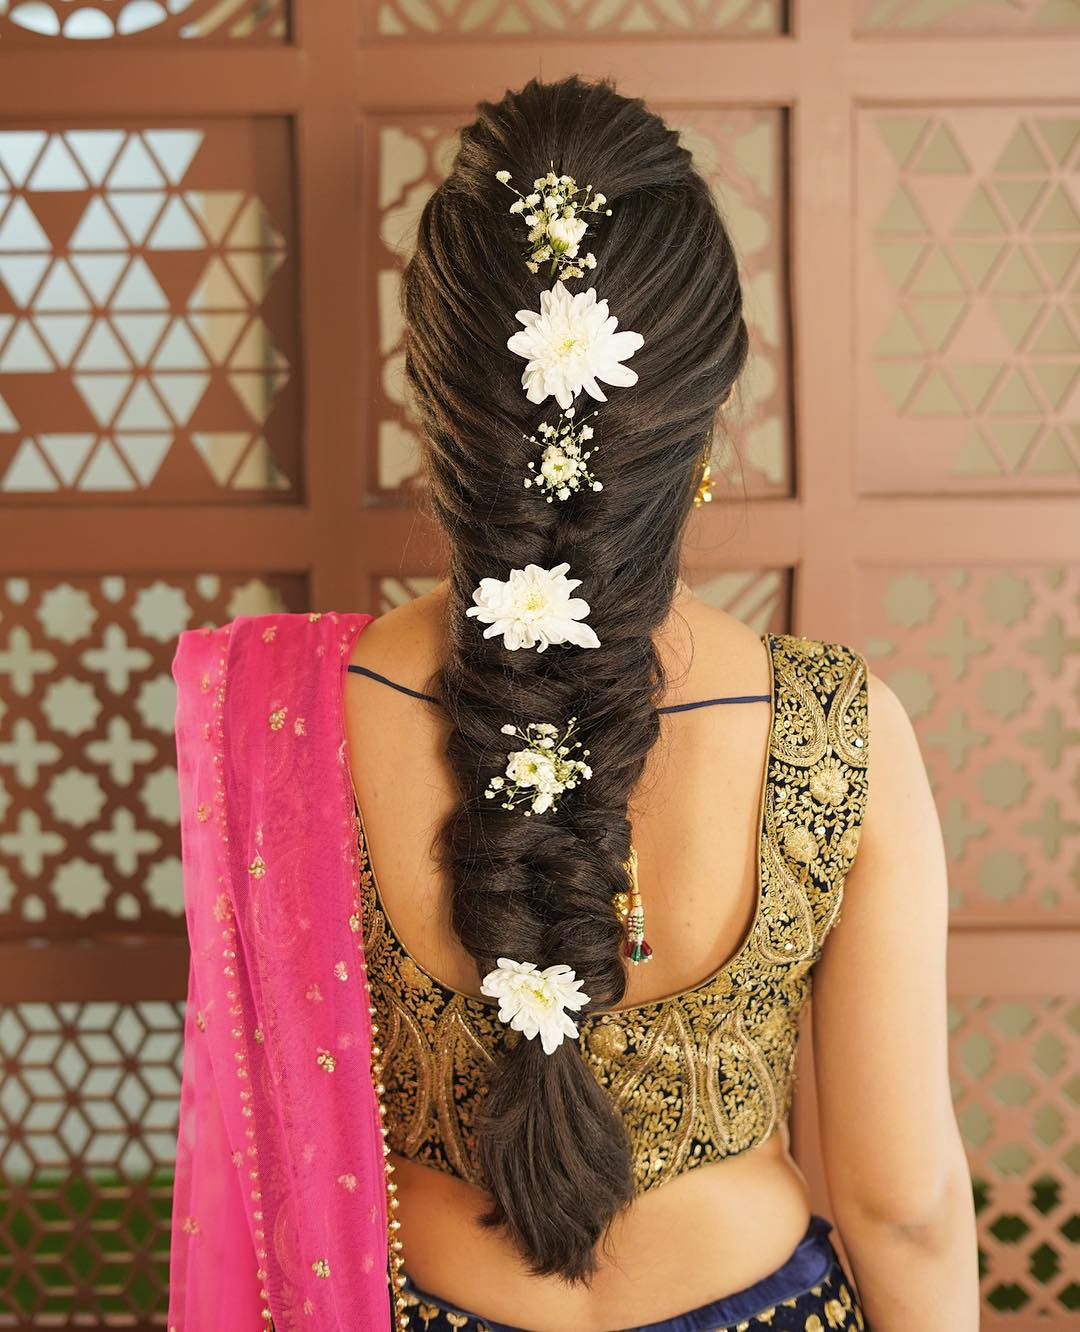 Mesmerizing in white: Floral hairstyles for Haldi and Mehendi Ceremonies!a